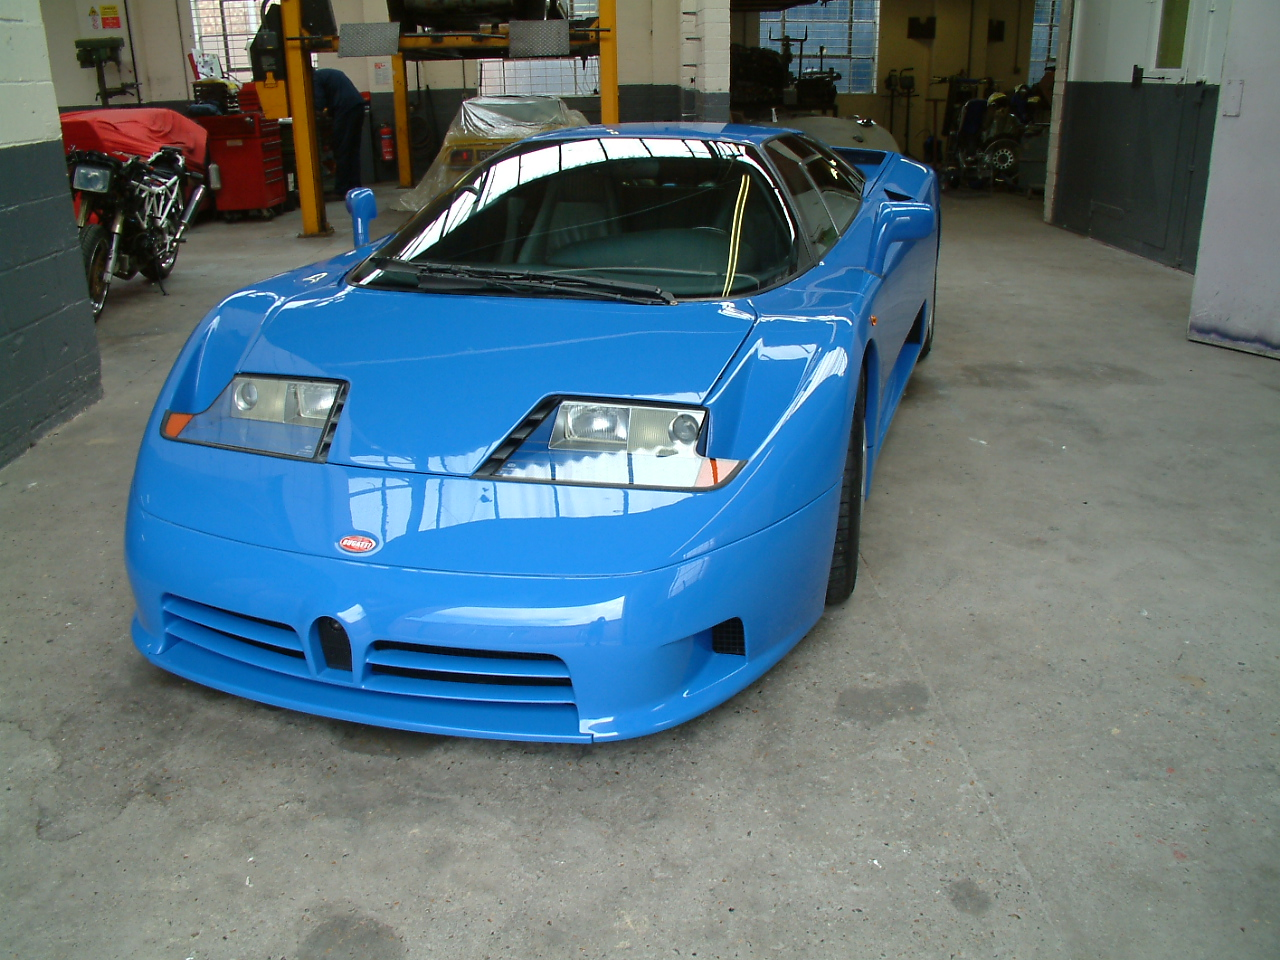 Bugatti EB110 Repainted, refitted, detailed and awaiting collection